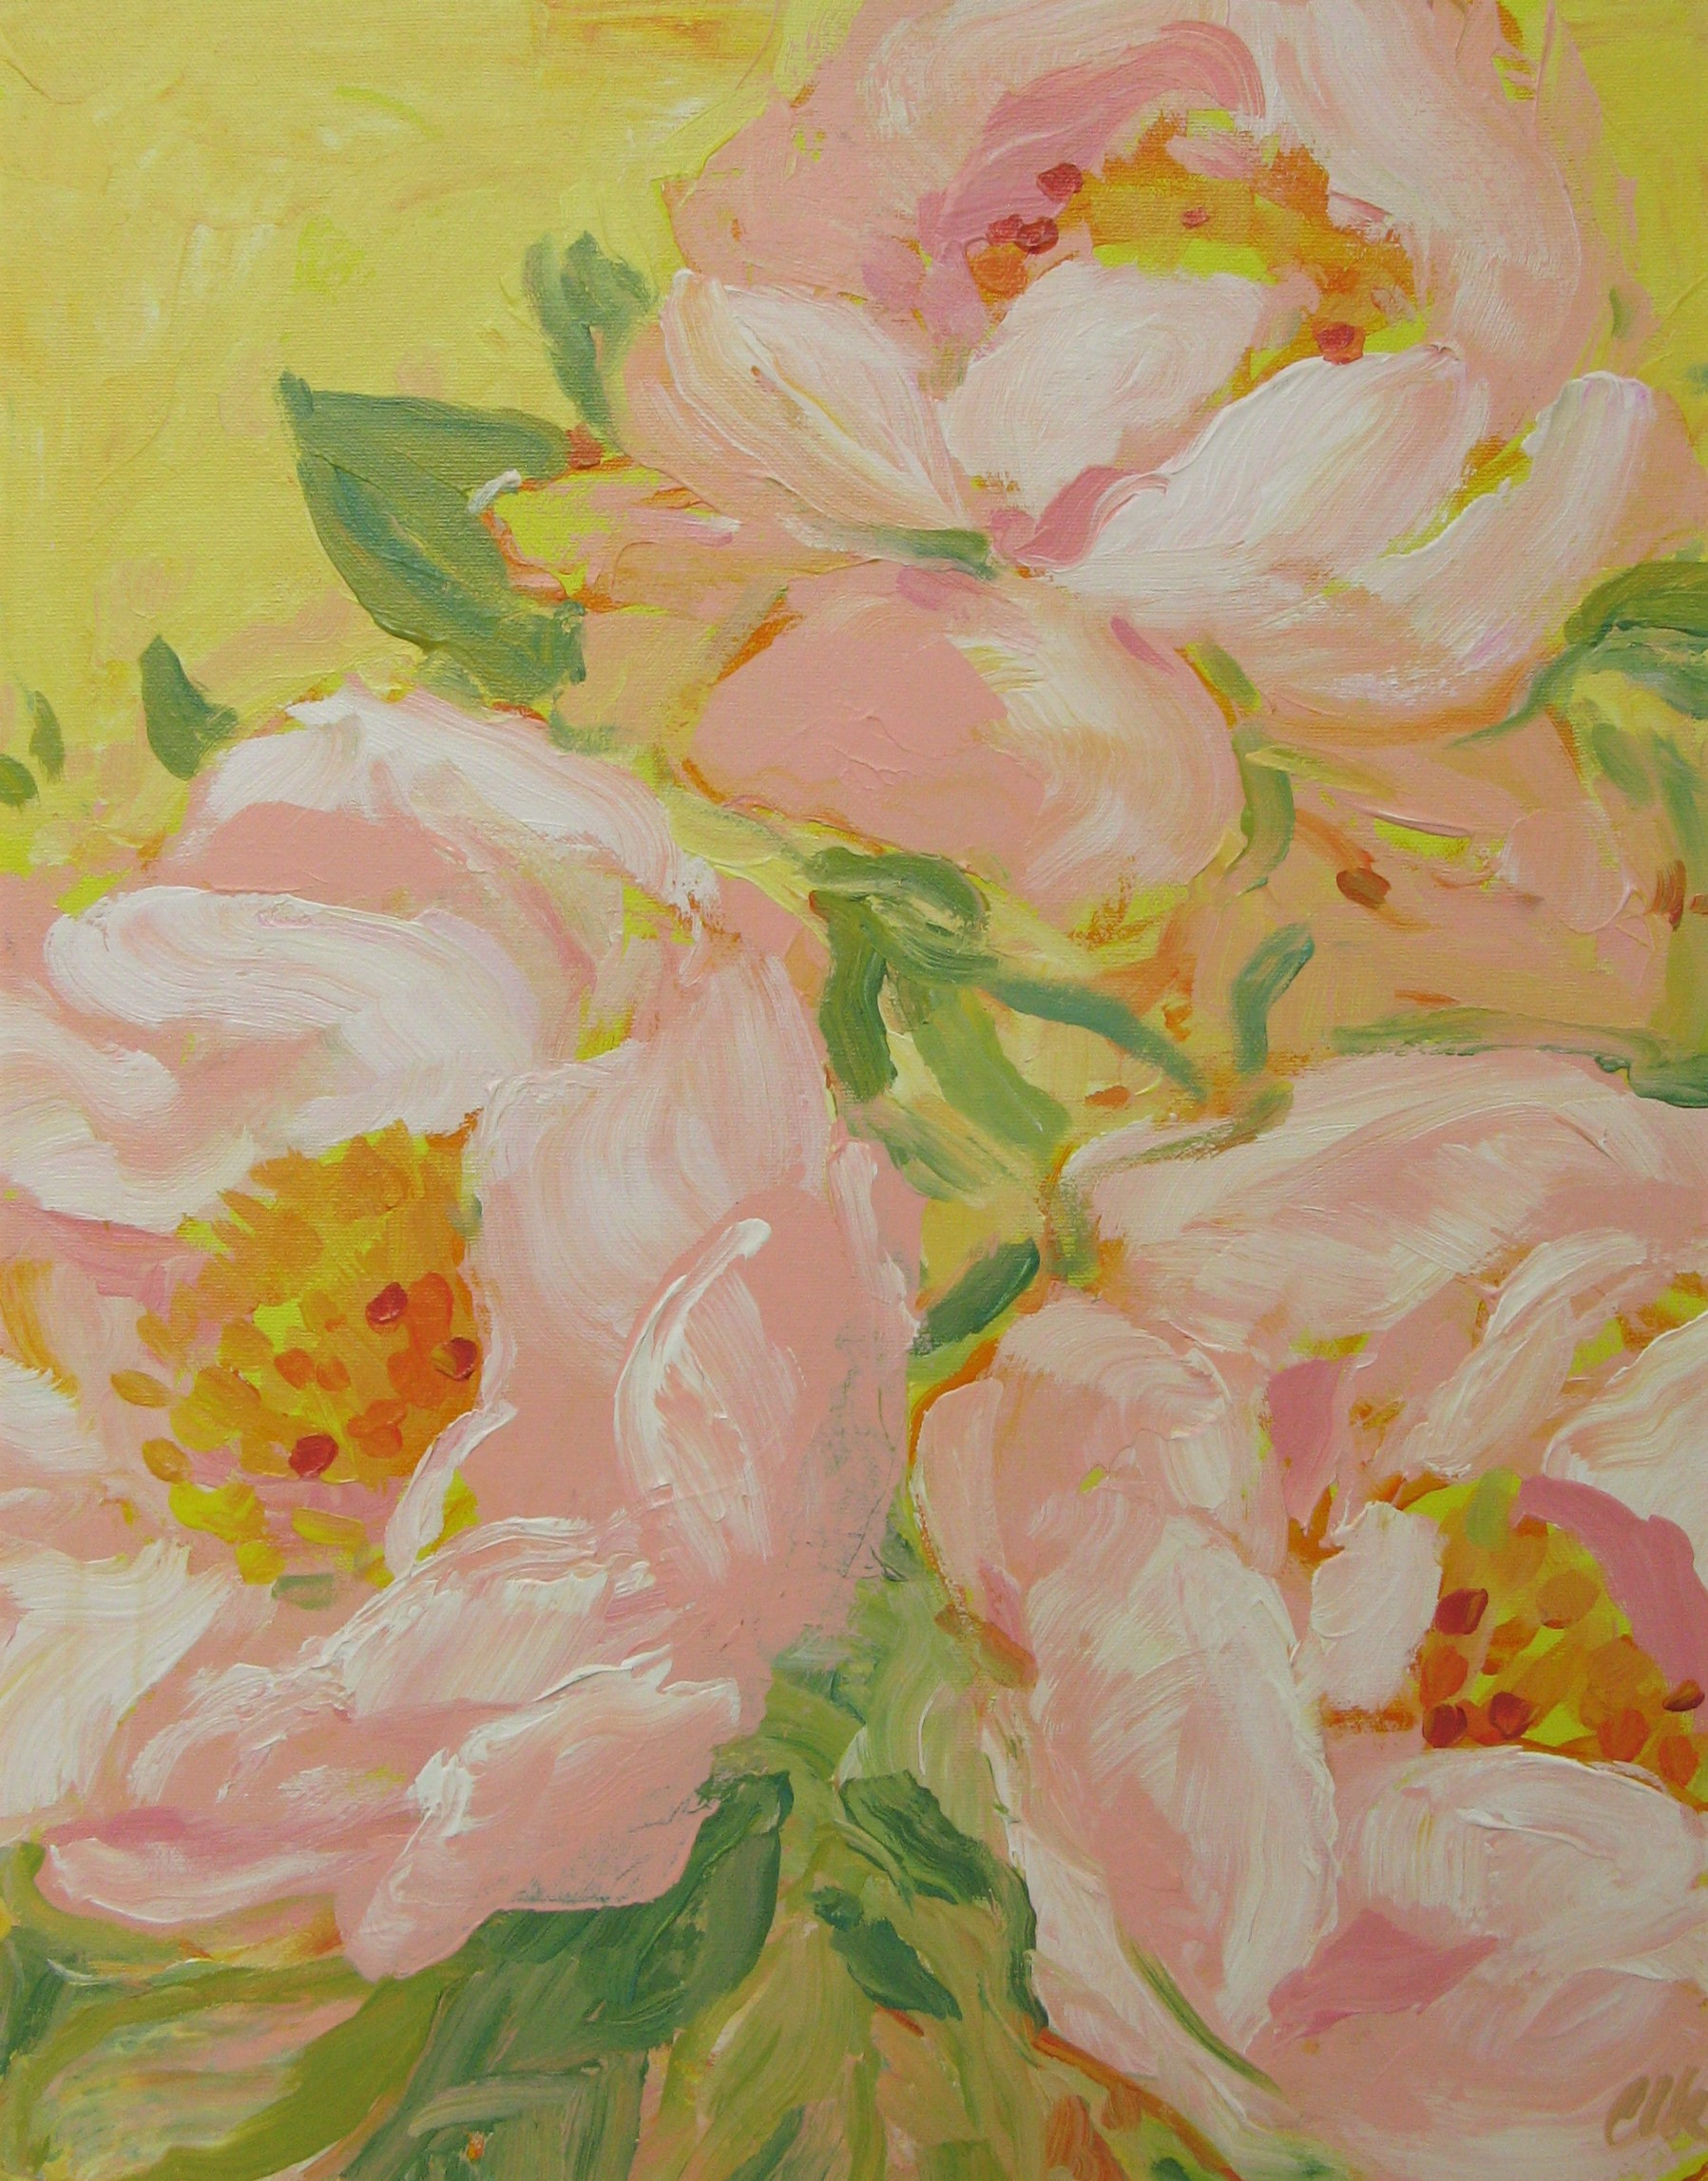 Peony Season - acrylic on canvas 20x16